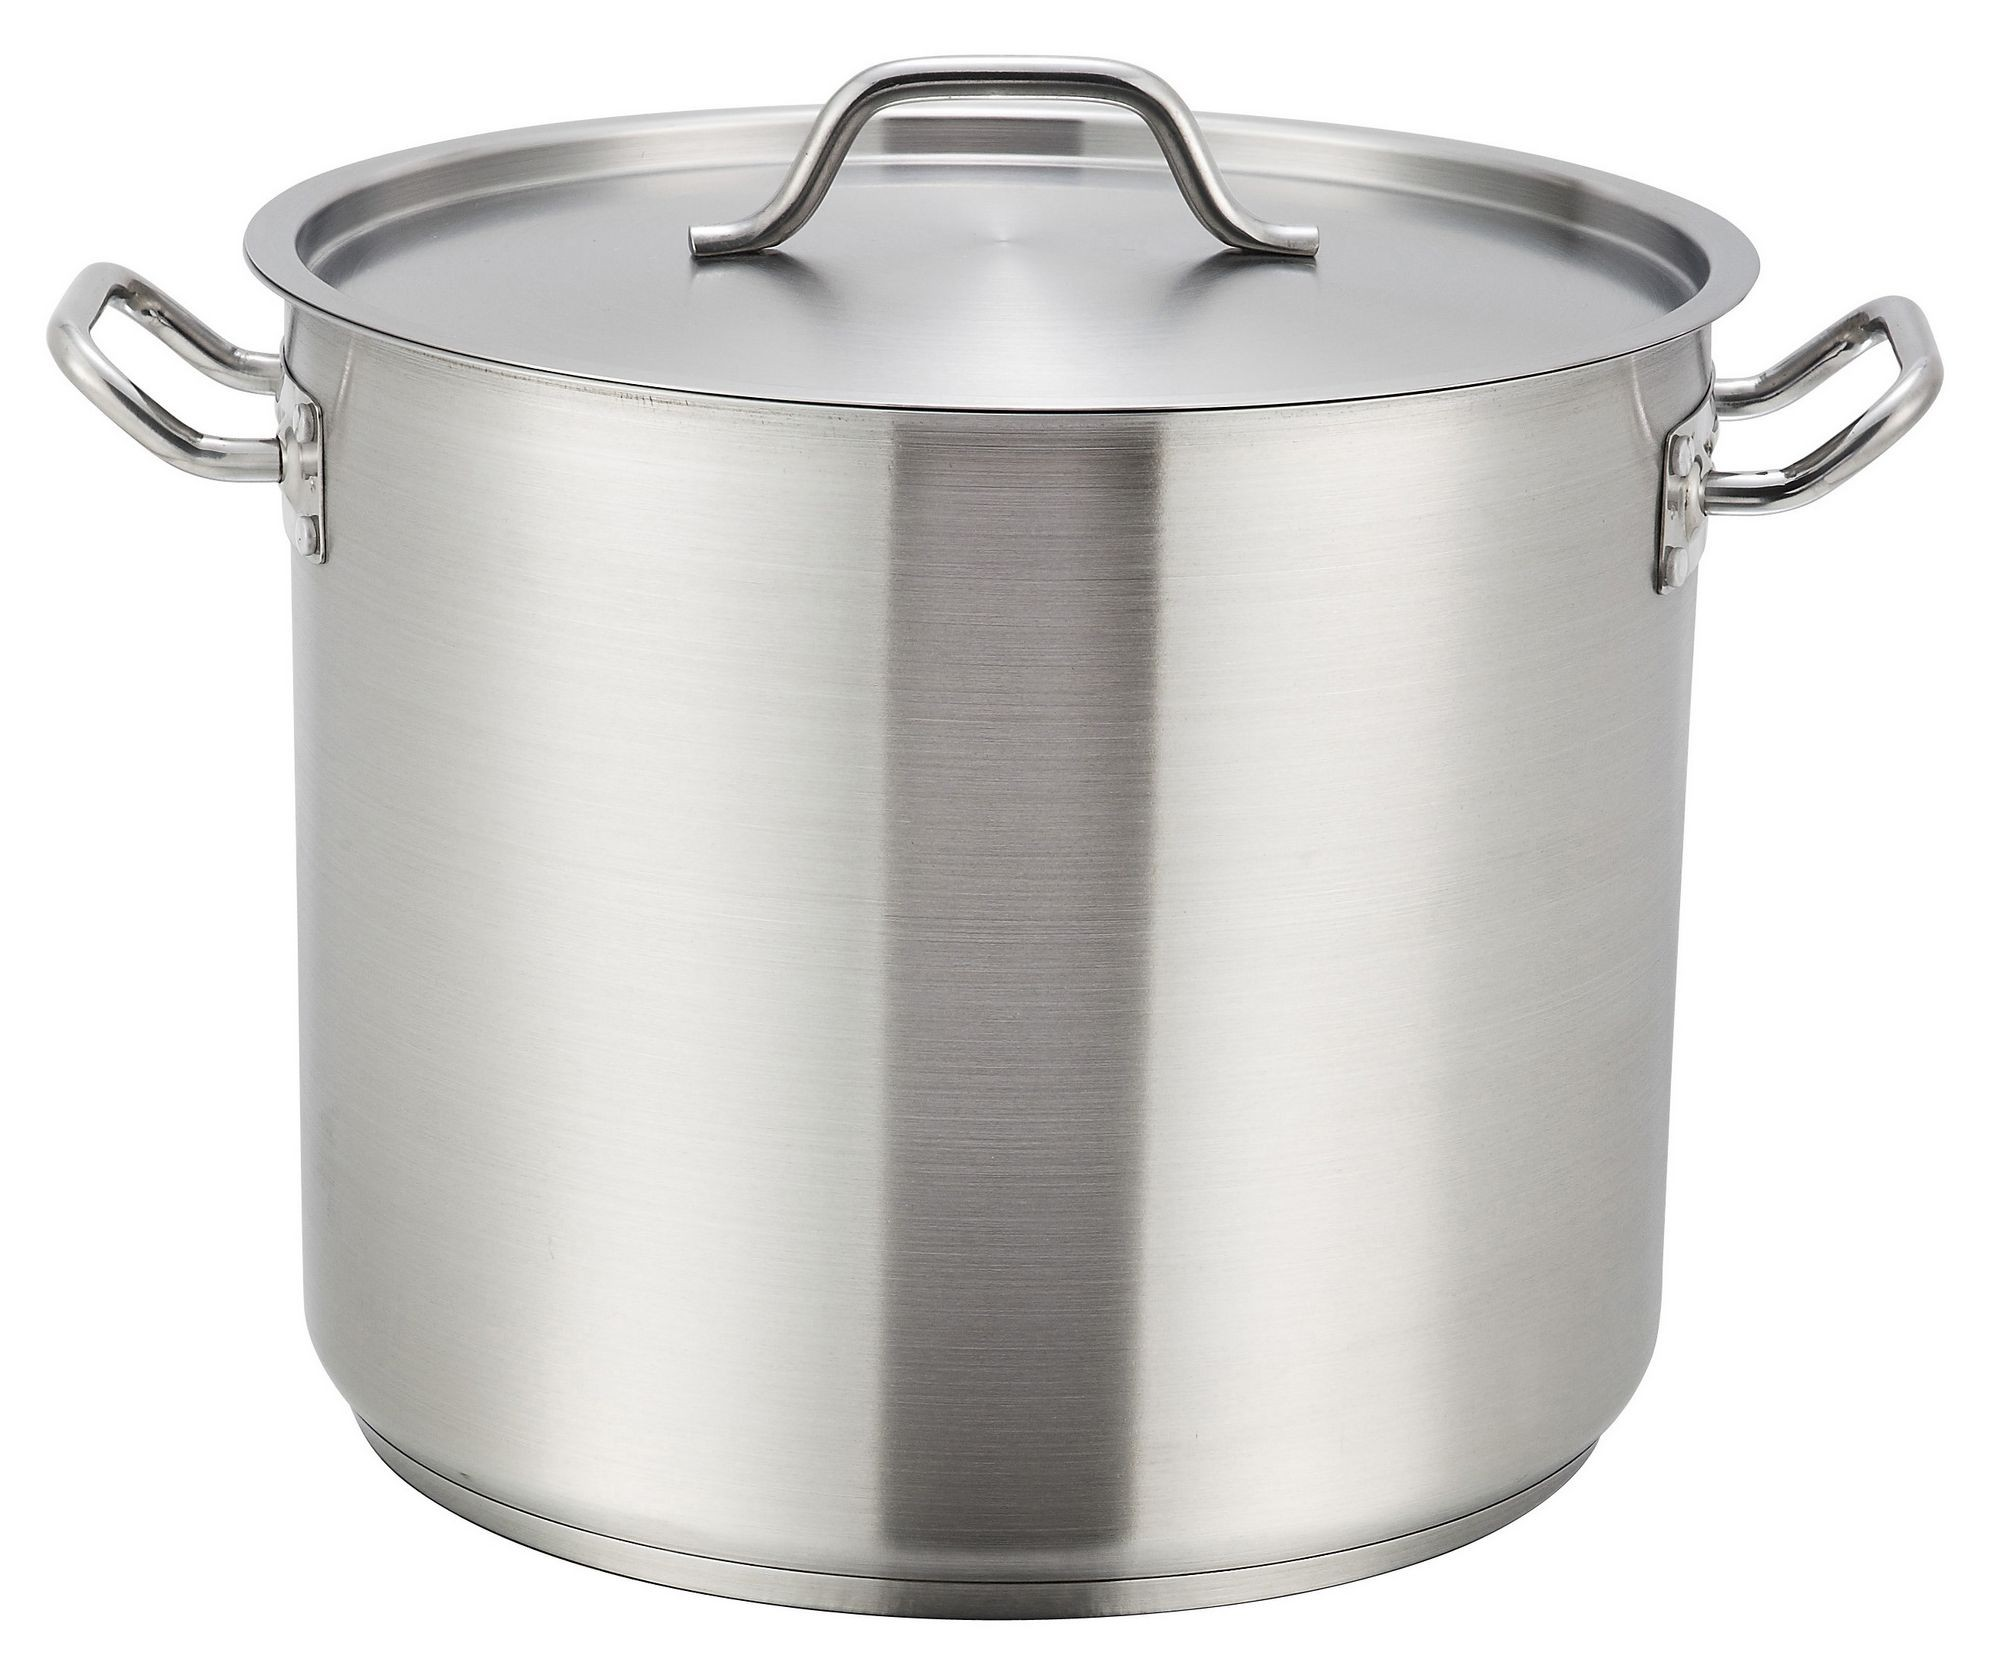 Stainless Steel 32-Qt Stock Pot